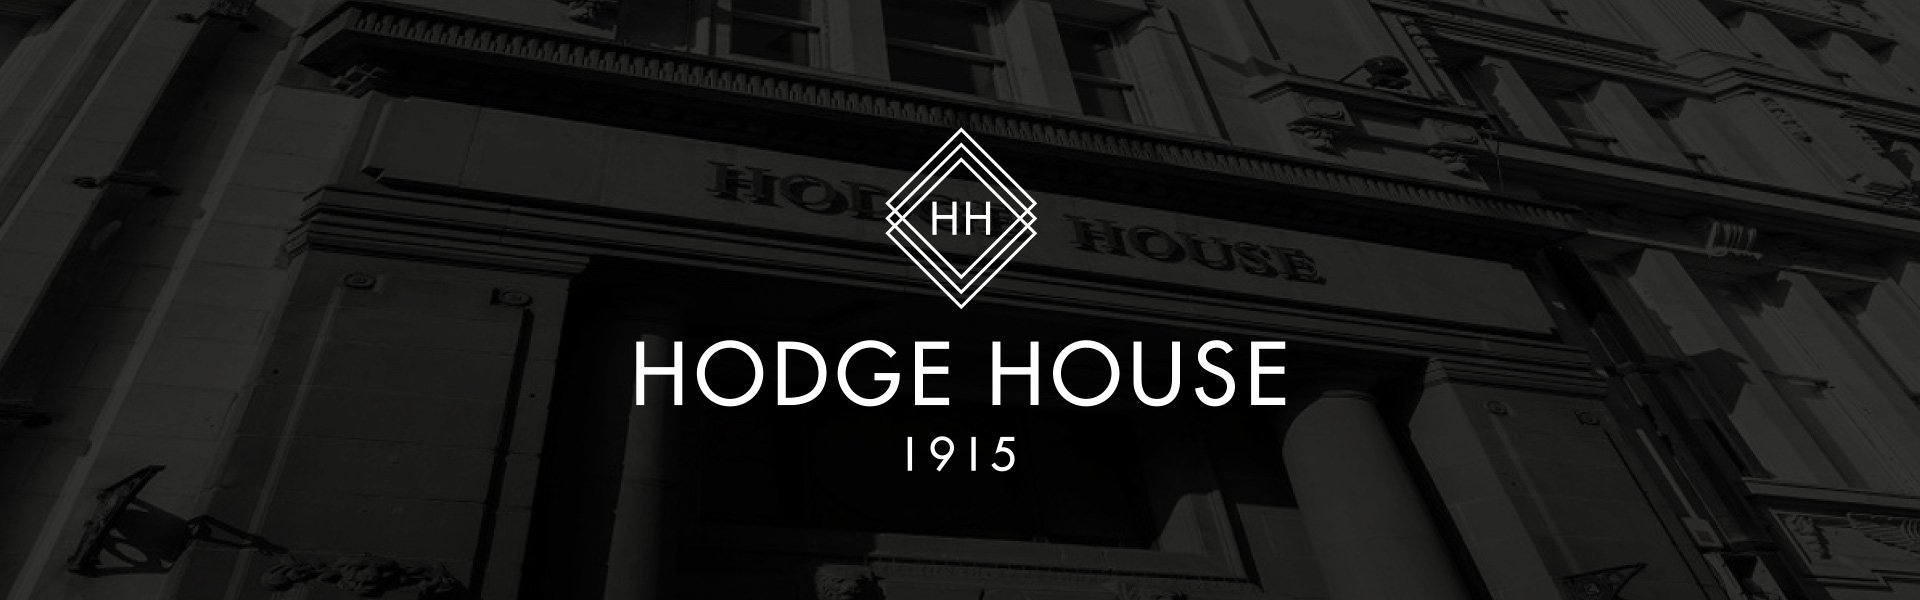 Hodge House hero logo